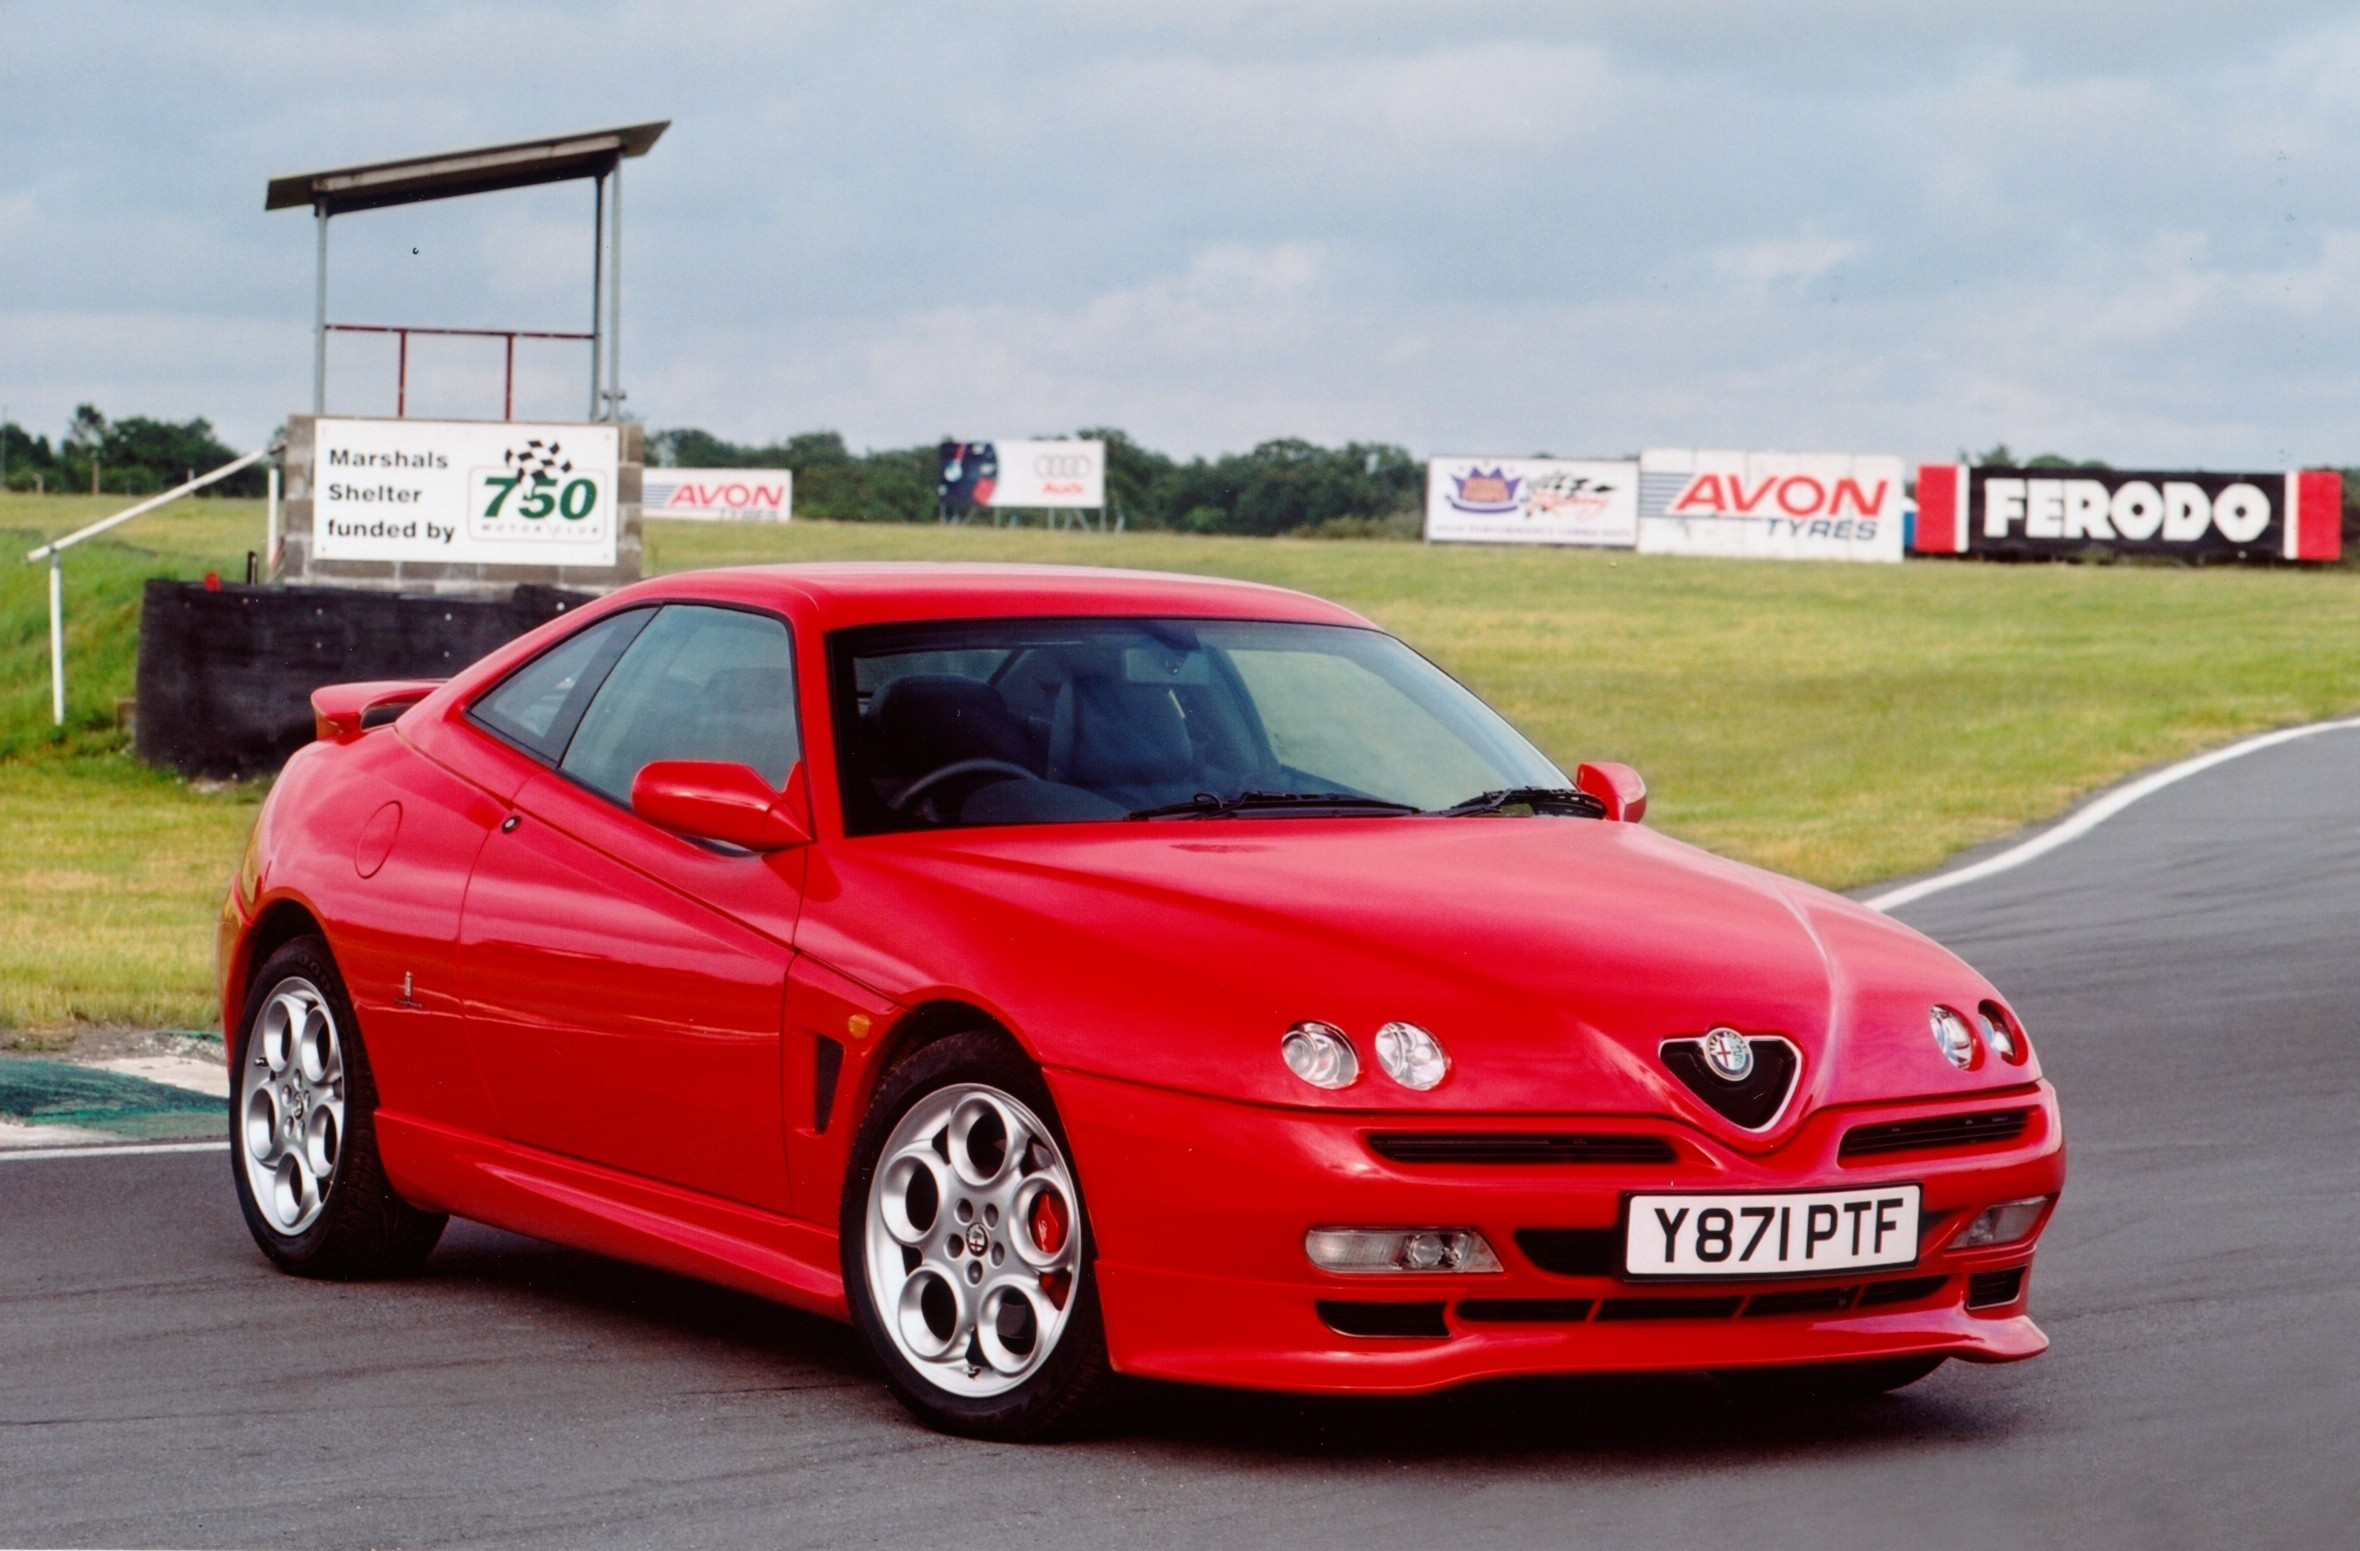 The GTV V6 remains one of the more affordable routes into Alfa Romeo sports car ownership